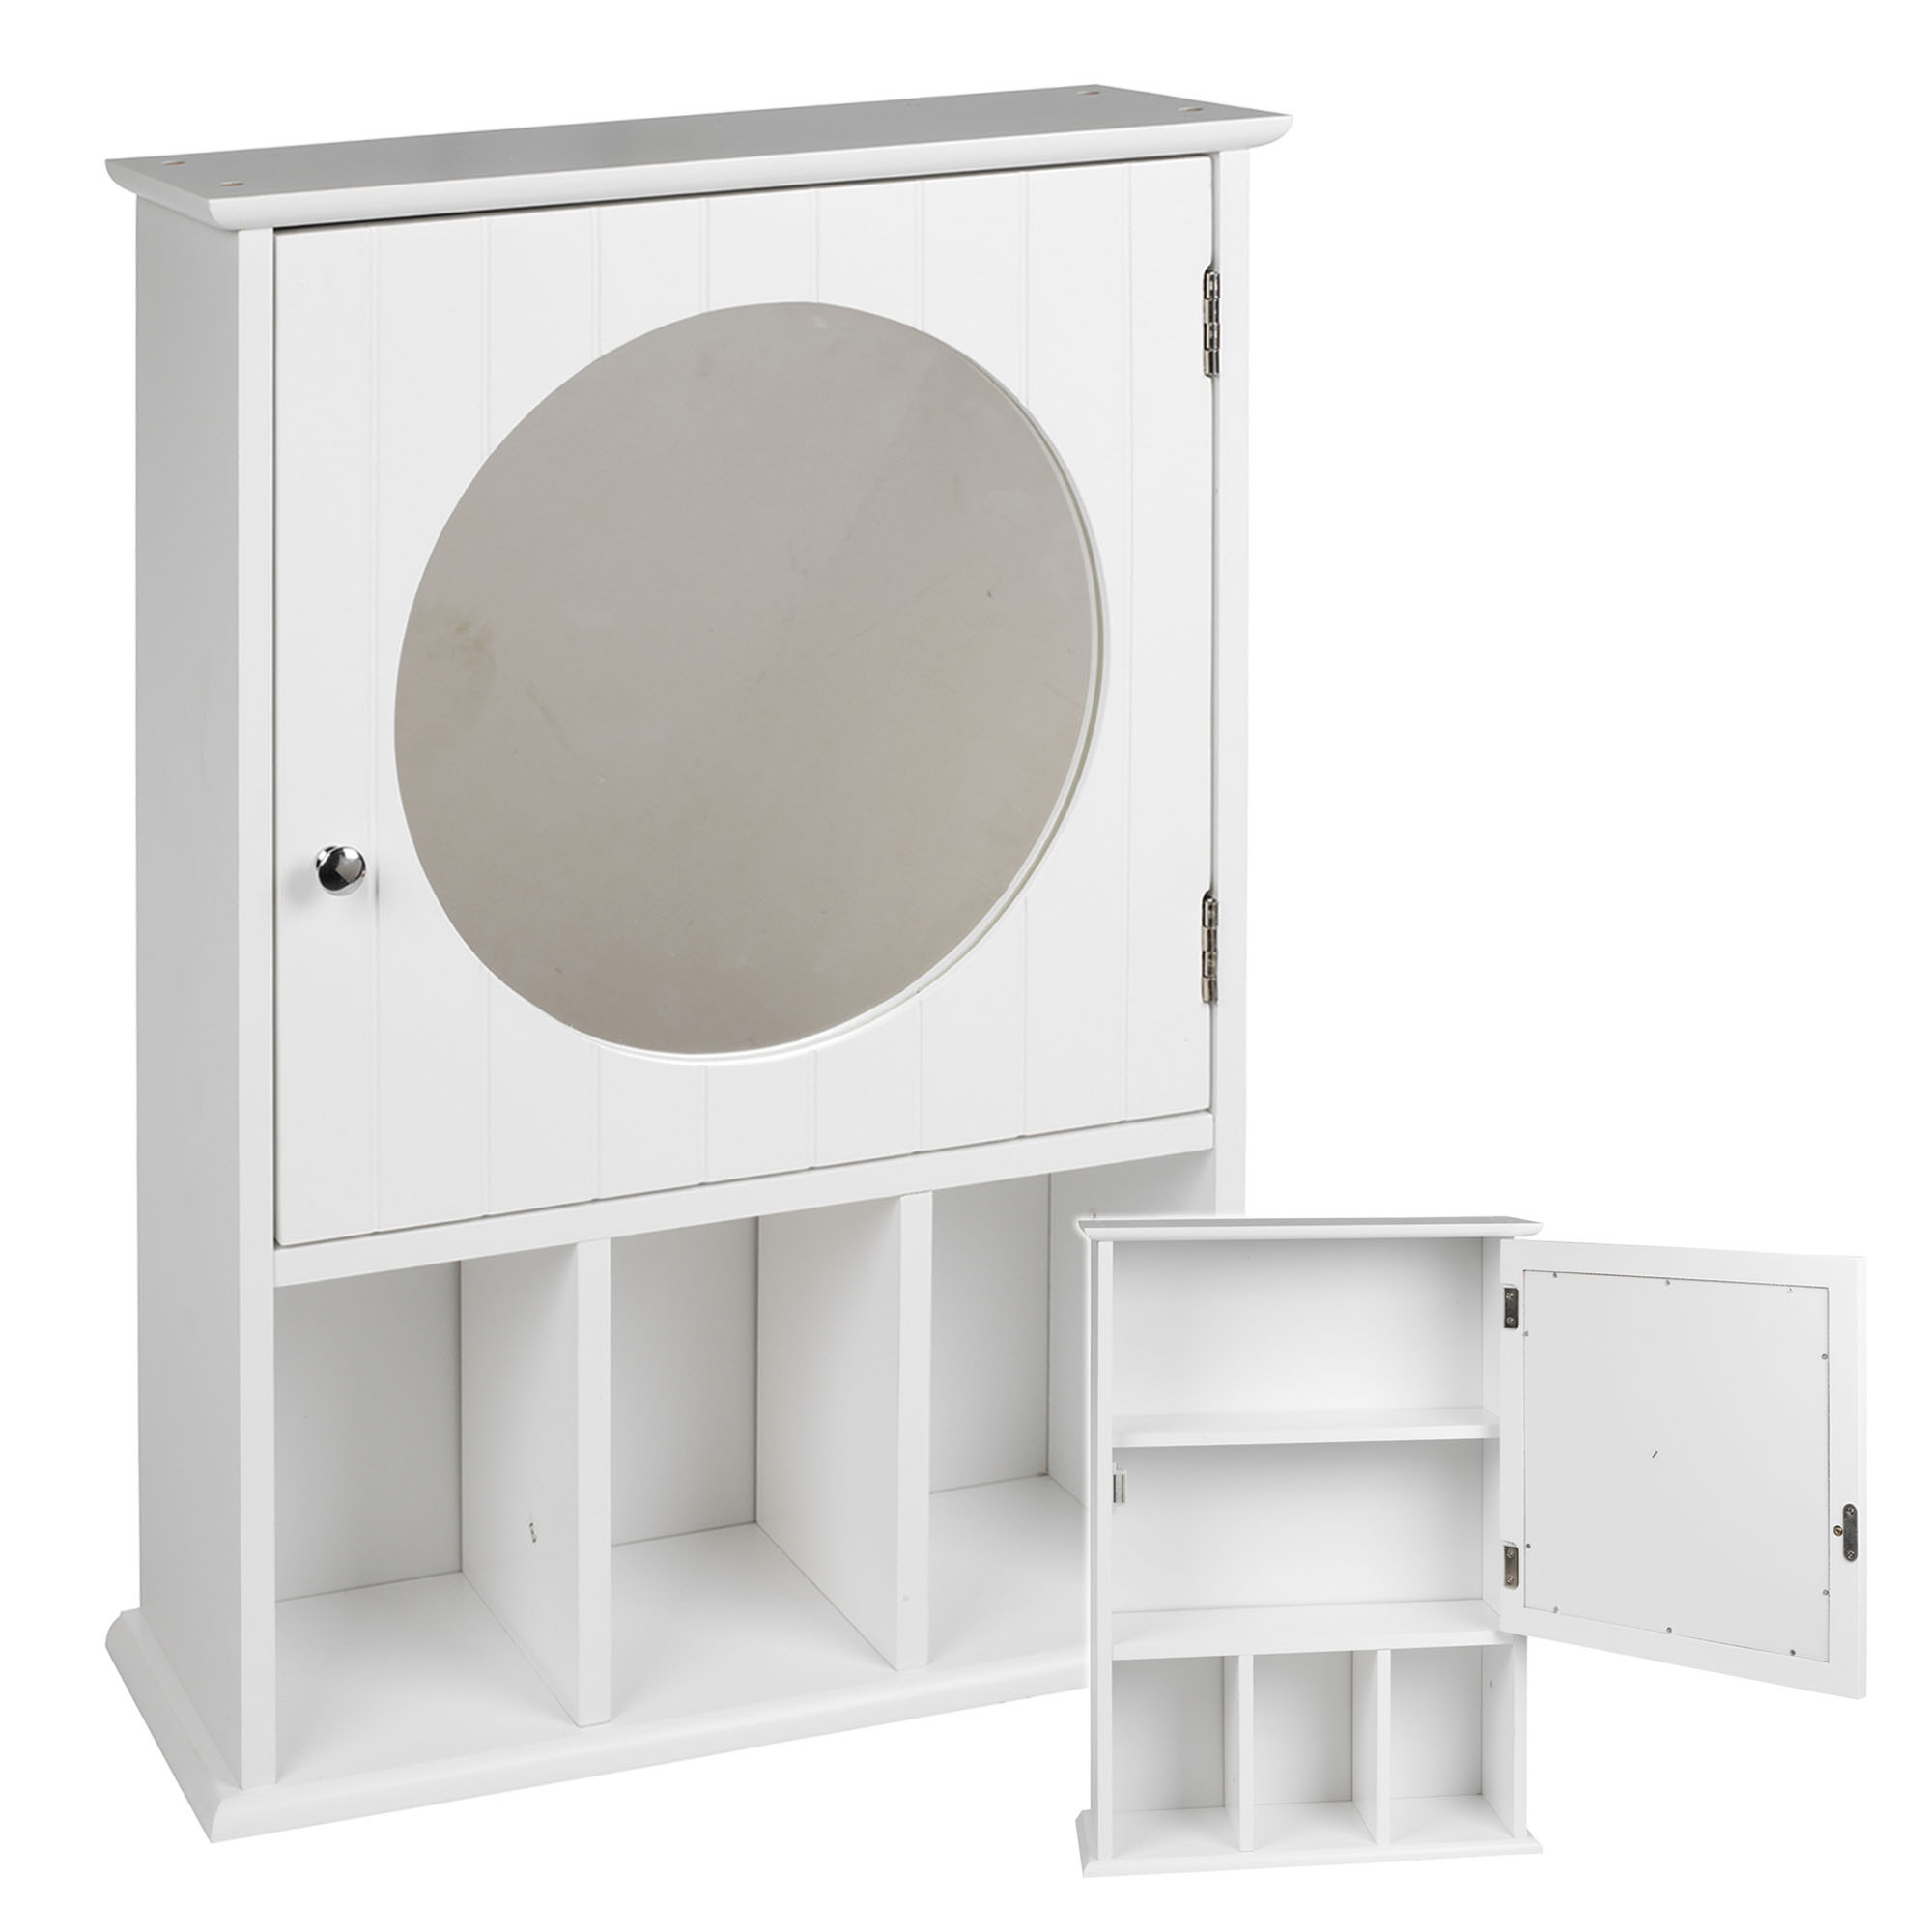 details about white mdf bathroom cabinet mirror wall mounted cupboard